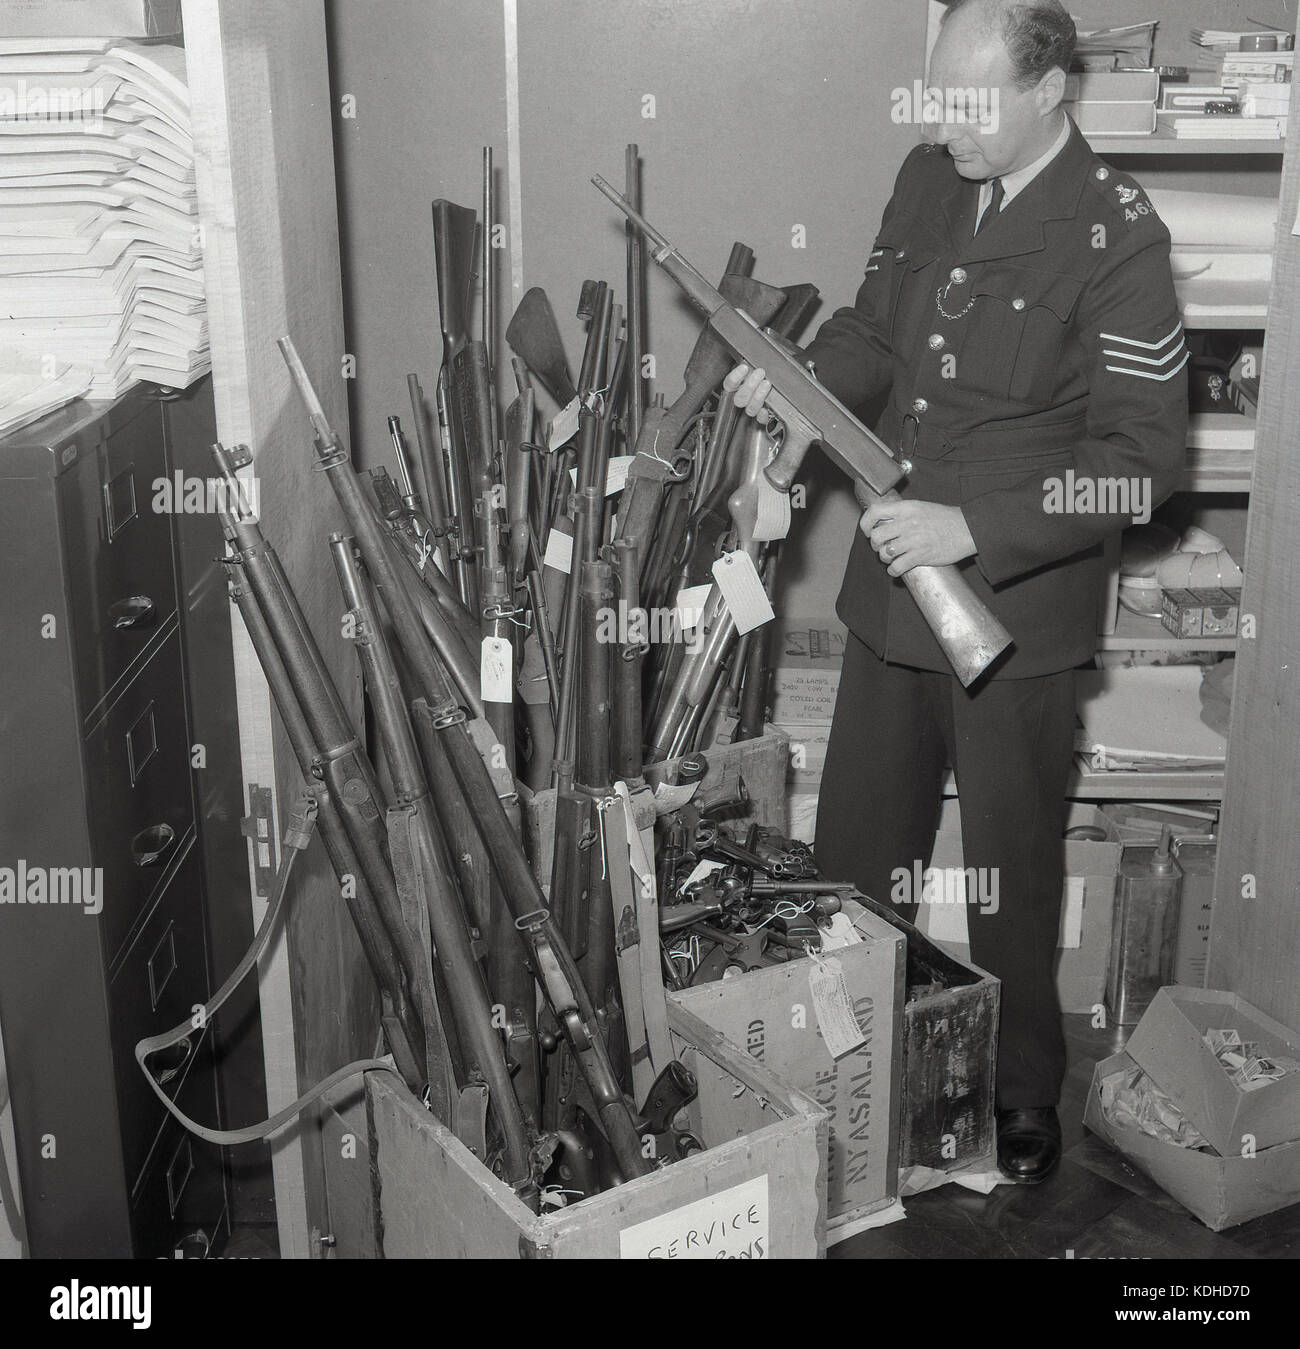 1960s, historical, male British police sergeant holding a rifle, selected from a stash of rifles, handguns and other - Stock Image